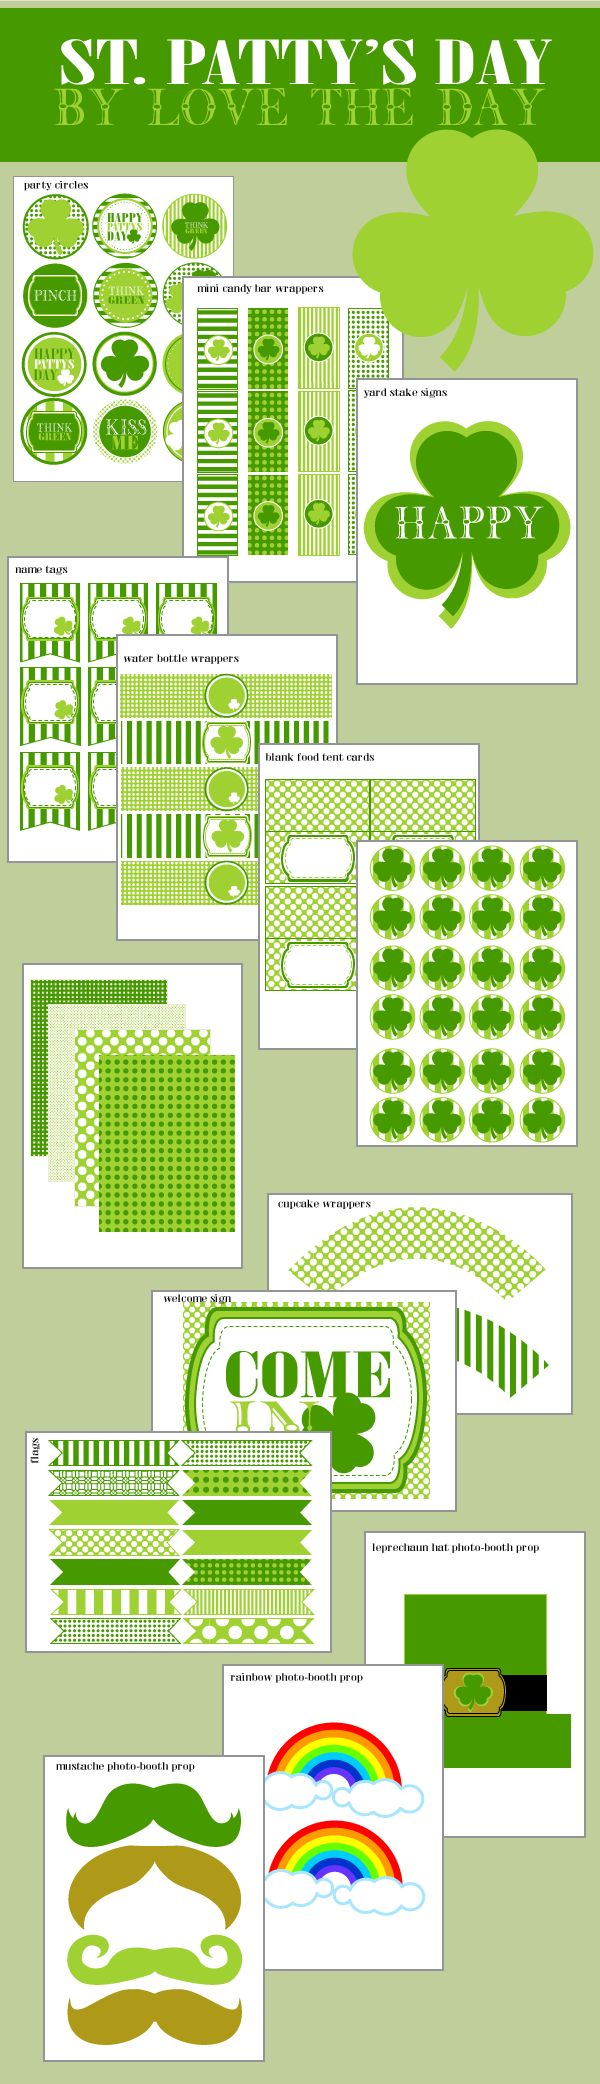 freeby free printable imprimible gratis stationery papelería carteles cupcakes St. Patrick's Day green verde trébol shamrock party fiesta miraquechulo